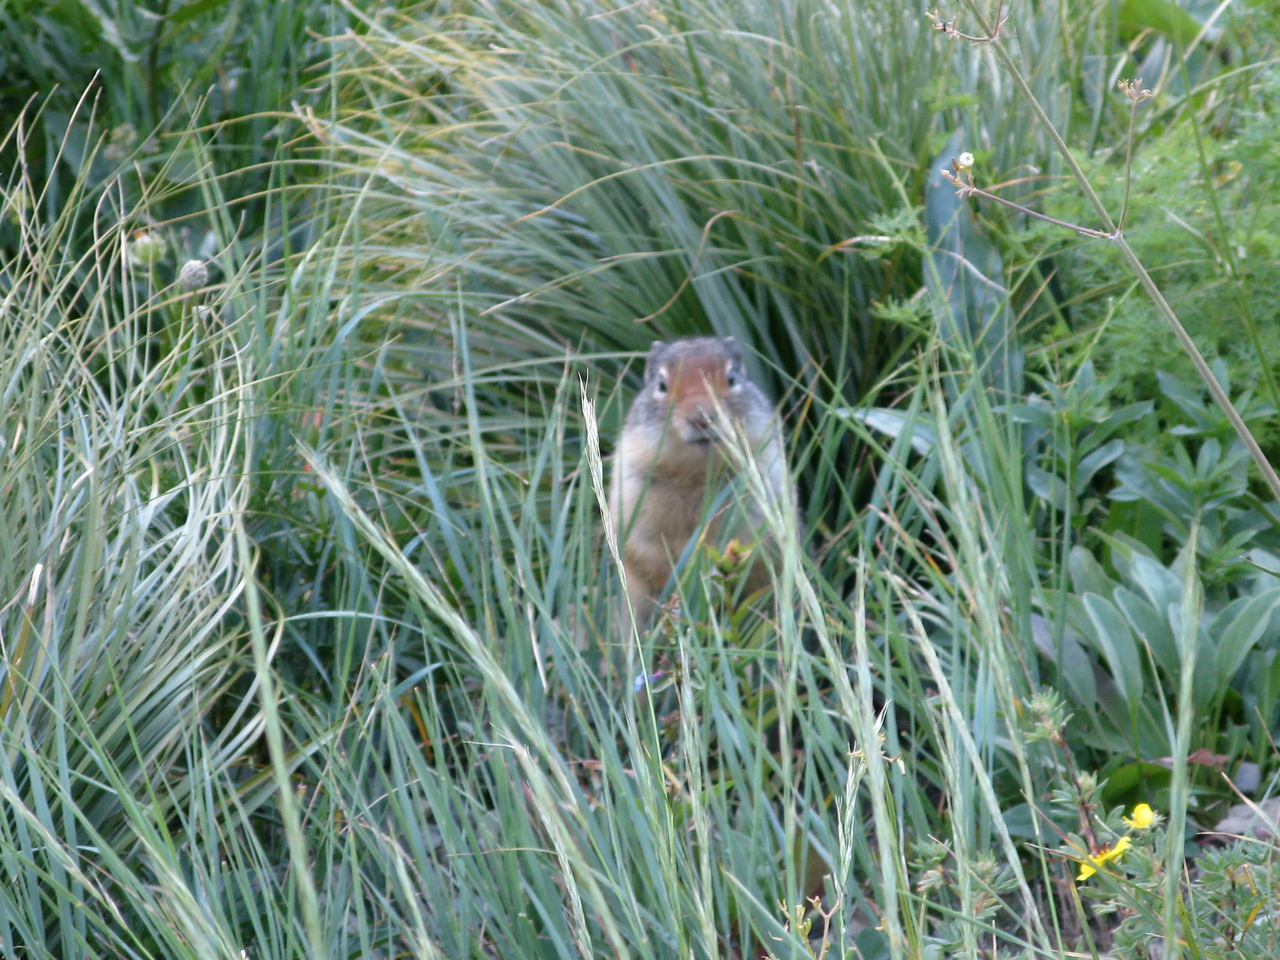 A ground squirrel checking us out.  Unlike the chipmunks at Rocky Mountain National Park, the ground squirrels were not begging us to feed them.  They scampered away from us.